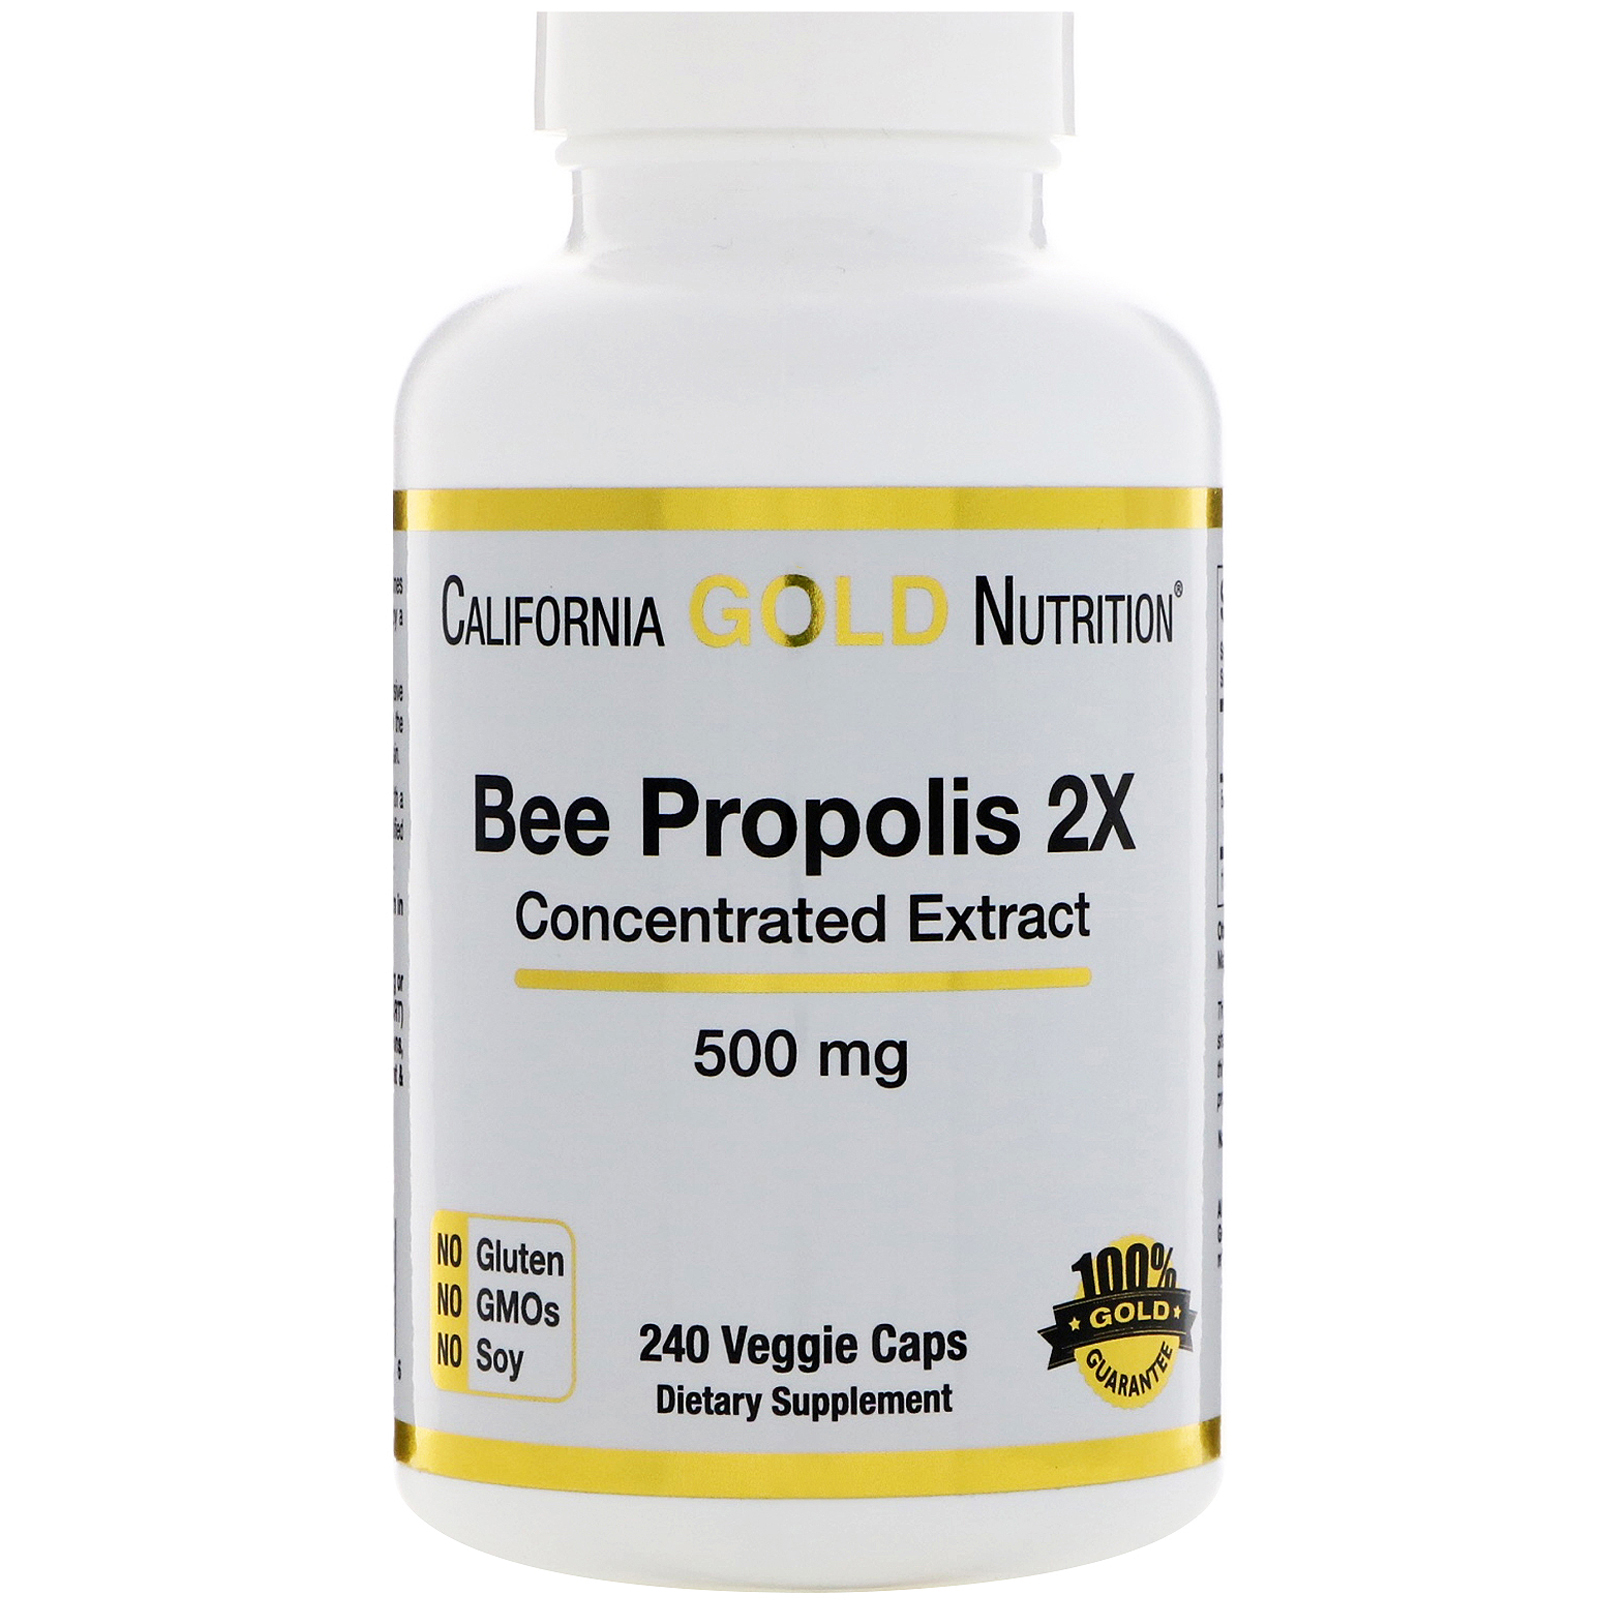 California Gold Nutrition, Bee Propolis 2X, Concentrated